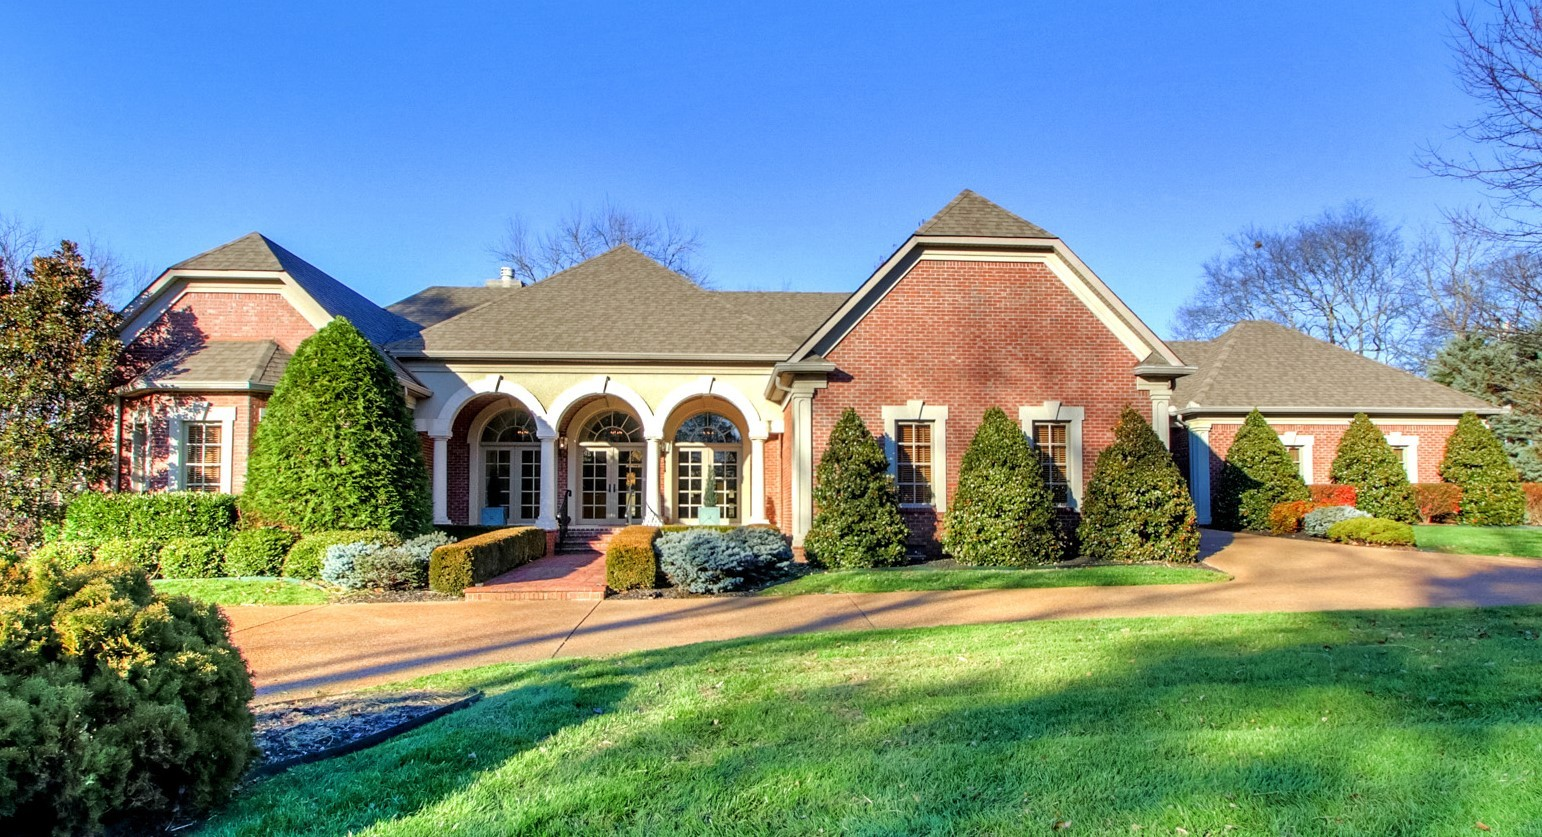 391 Riverbend Country Club Rd, Shelbyville, TN 37160 - Shelbyville, TN real estate listing